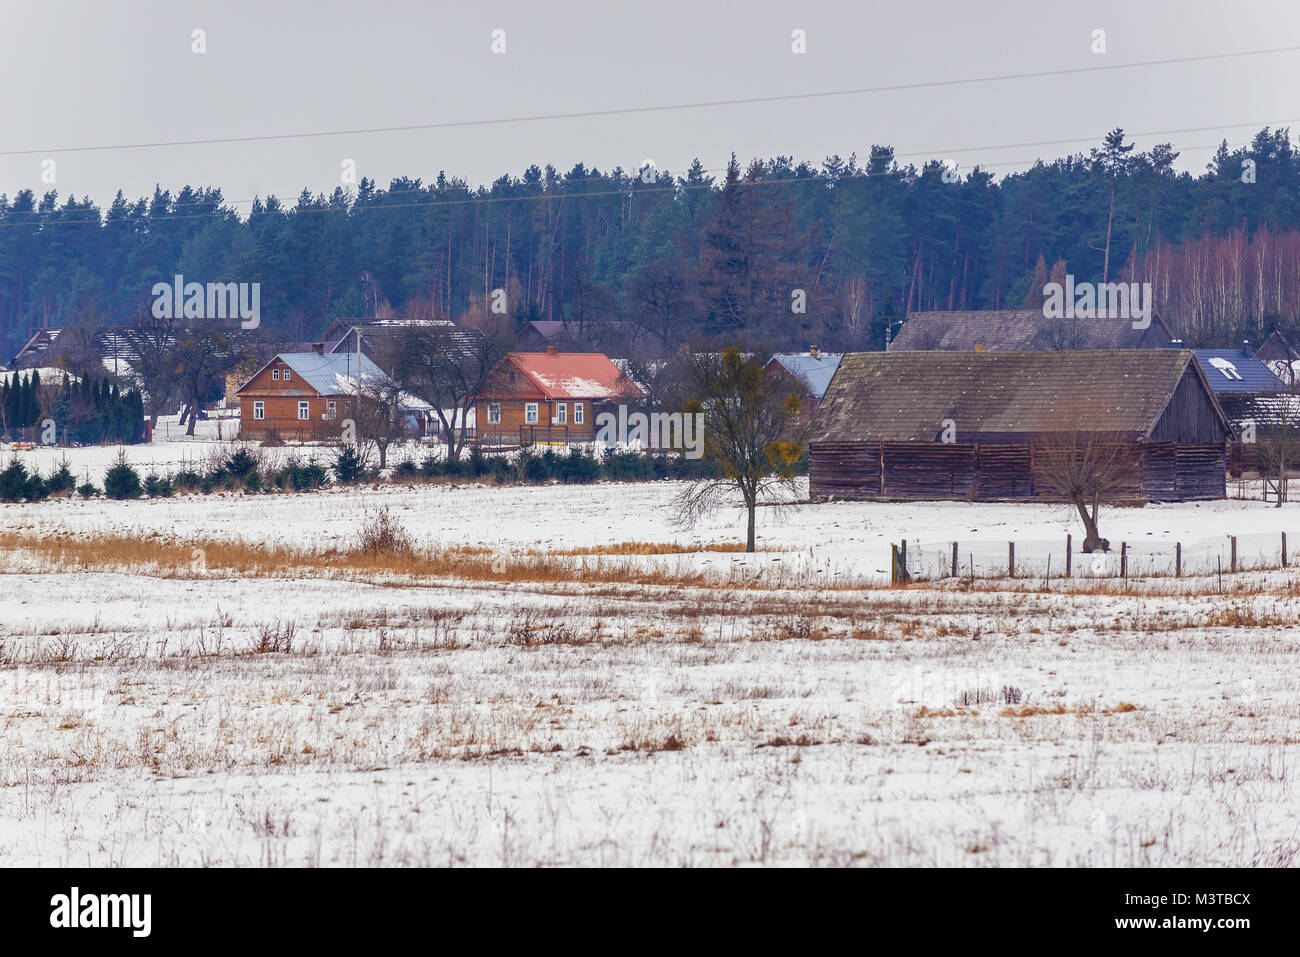 Soce village on so called The Land of Open Shutters trail, famous for its traditional architecture in Podlaskie - Stock Image